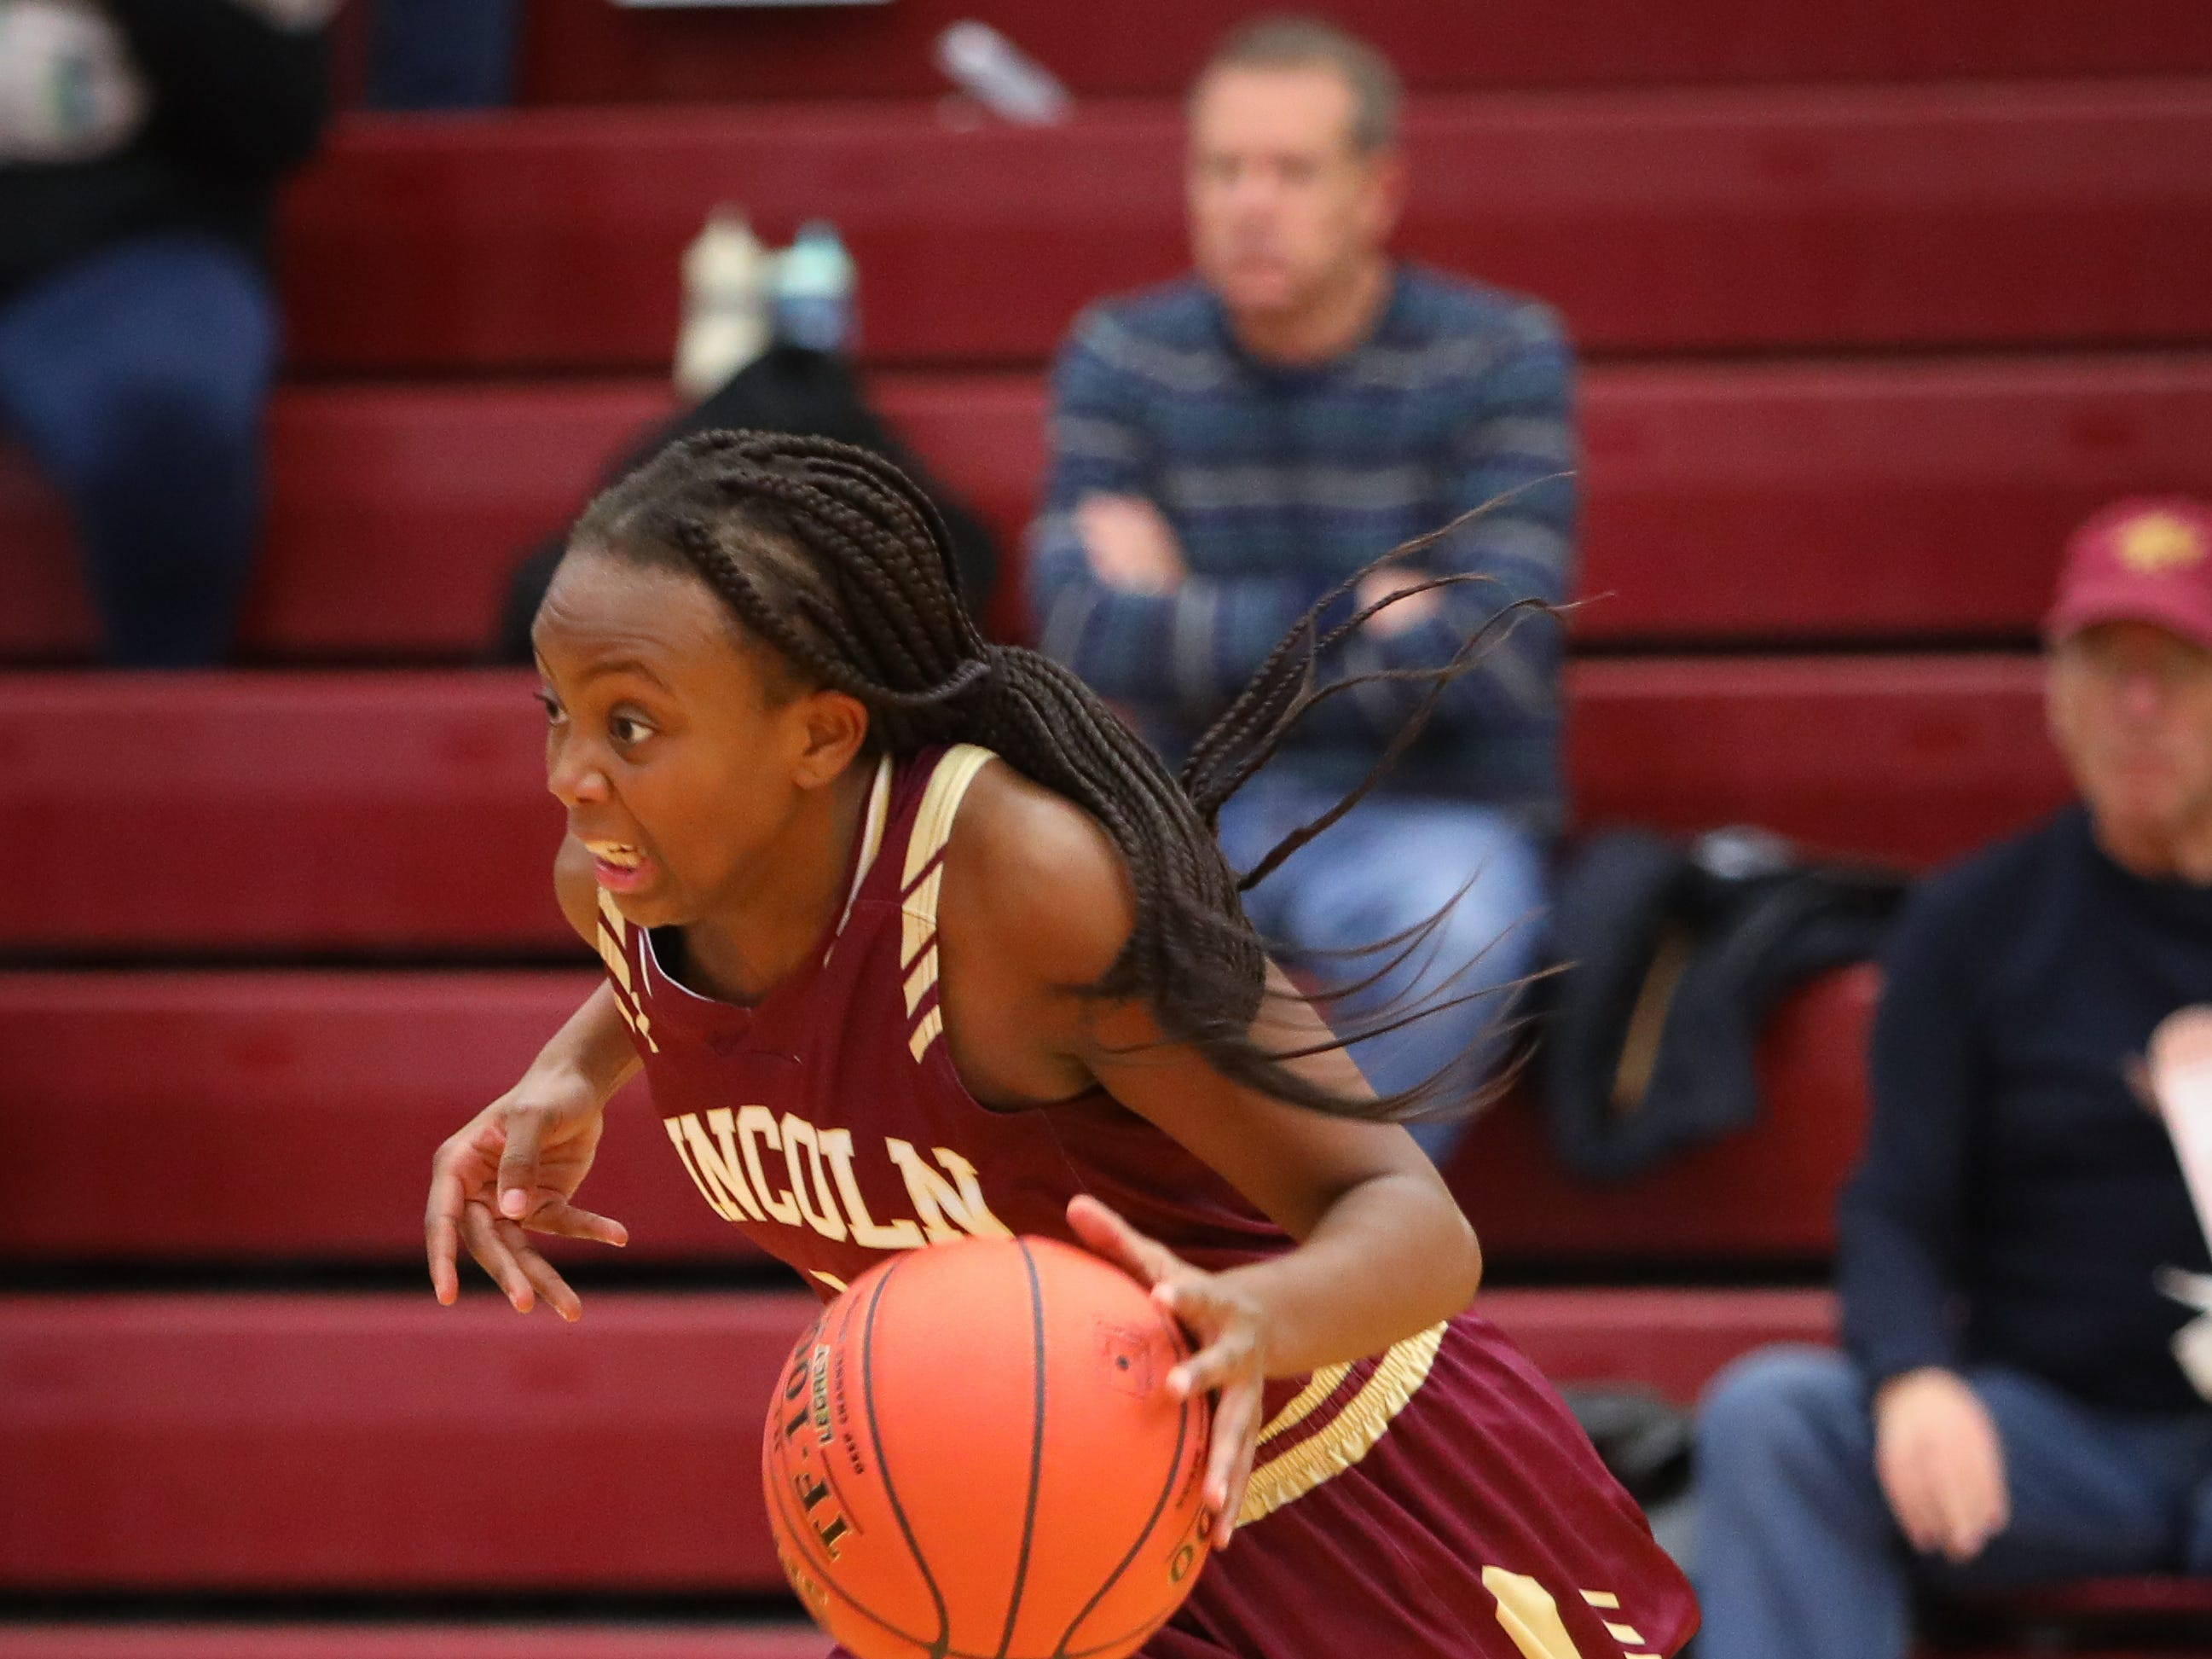 Lincoln freshman Trinity Cheatom begins her drive to the hoop during a girls high school basketball game between the Lincoln Railsplitters and the Ankeny Hawks at Ankeny High School on Dec. 4, 2018 in Ankeny, Iowa.